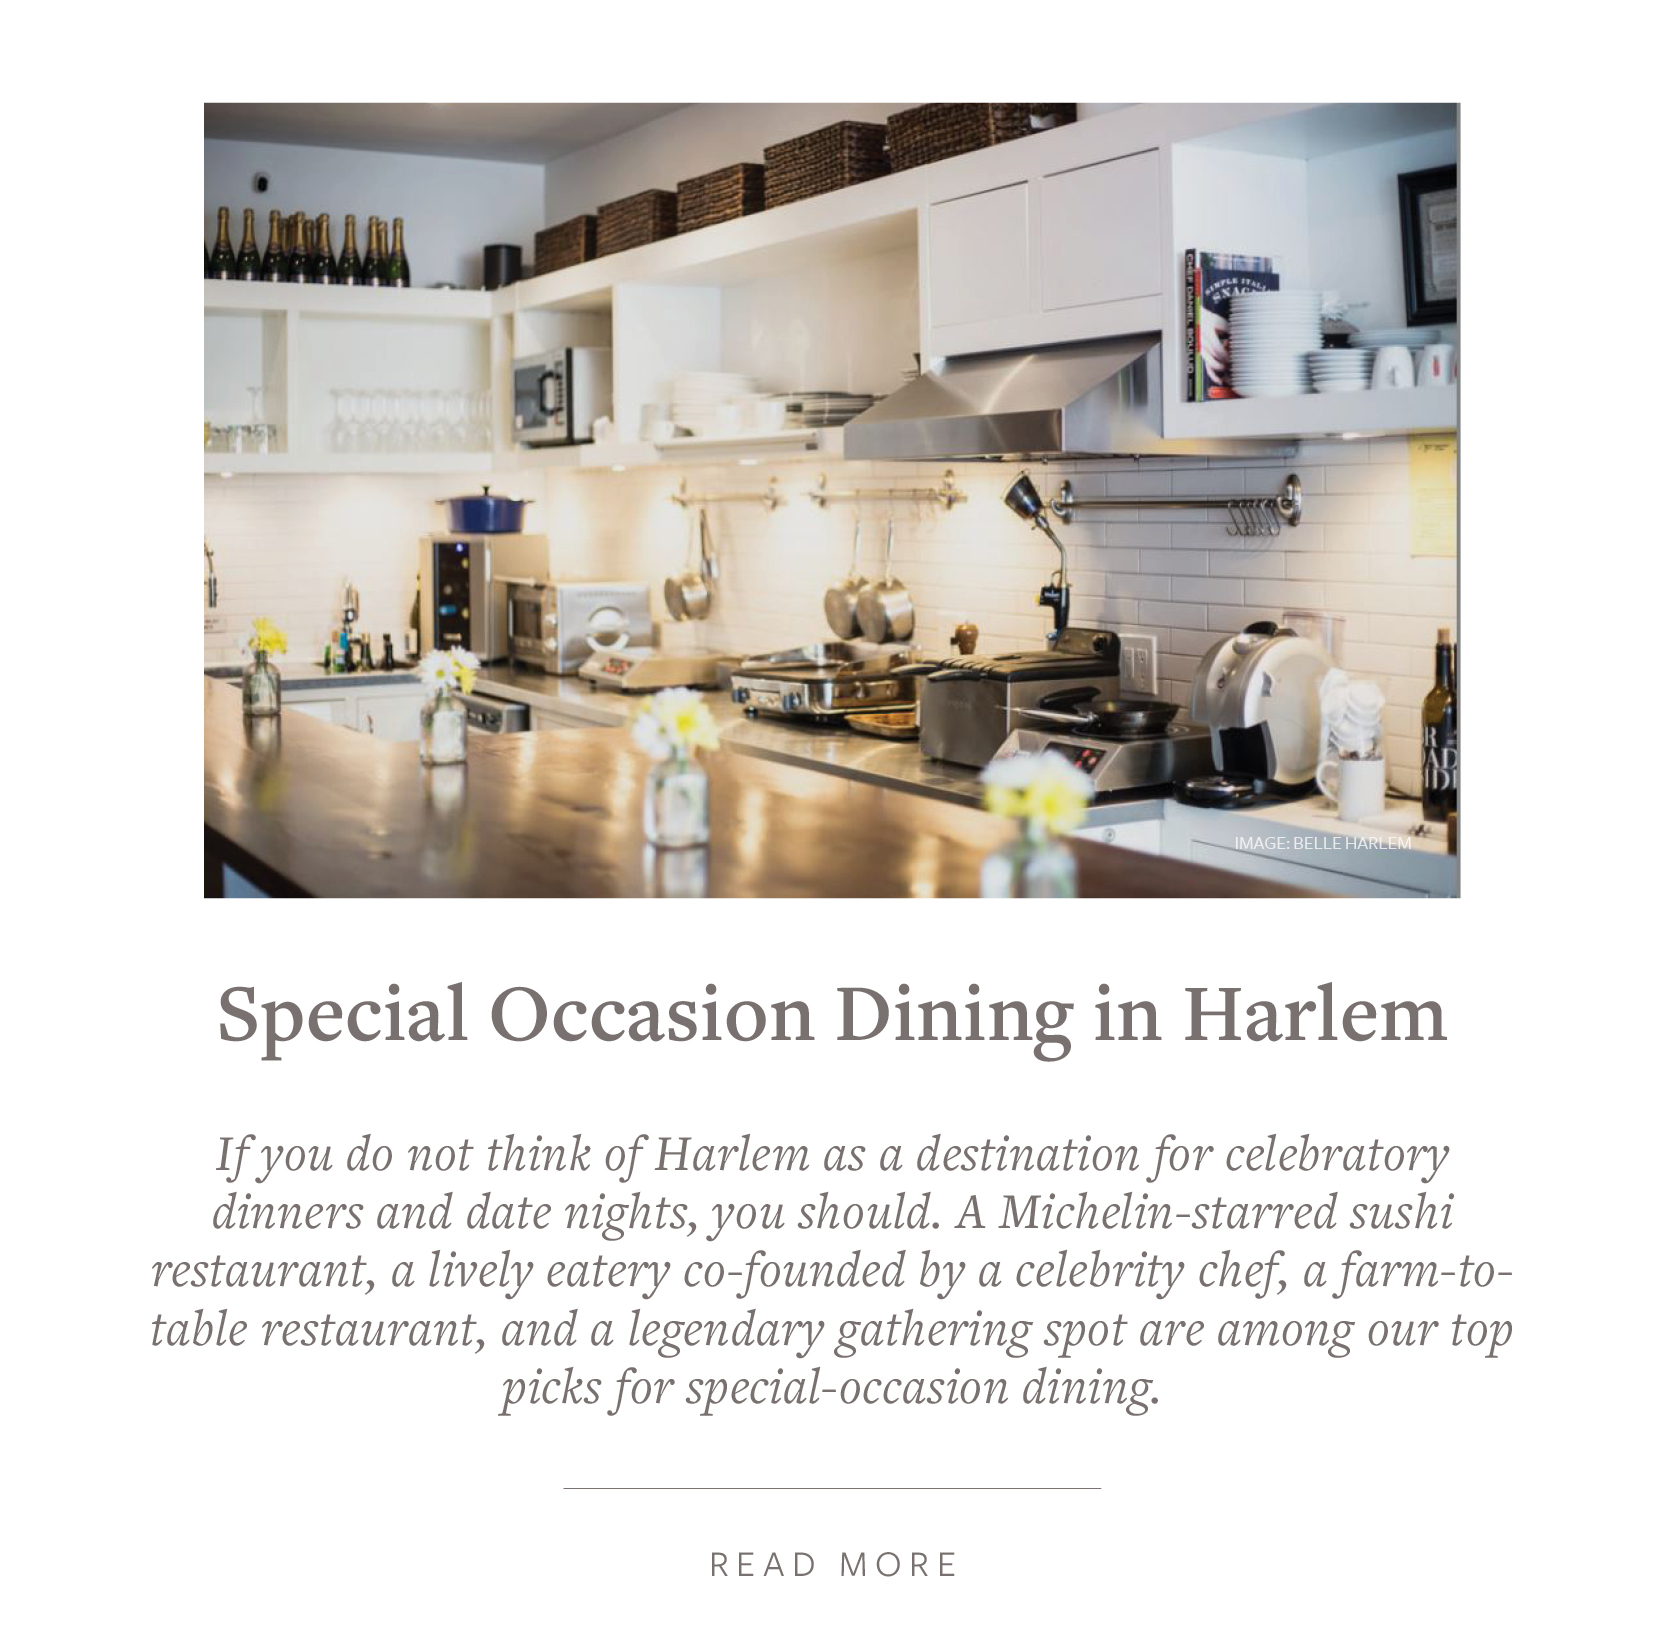 Harlem's Celebratory Dinners - Michelin-starred Sushi, Farm-to-Table